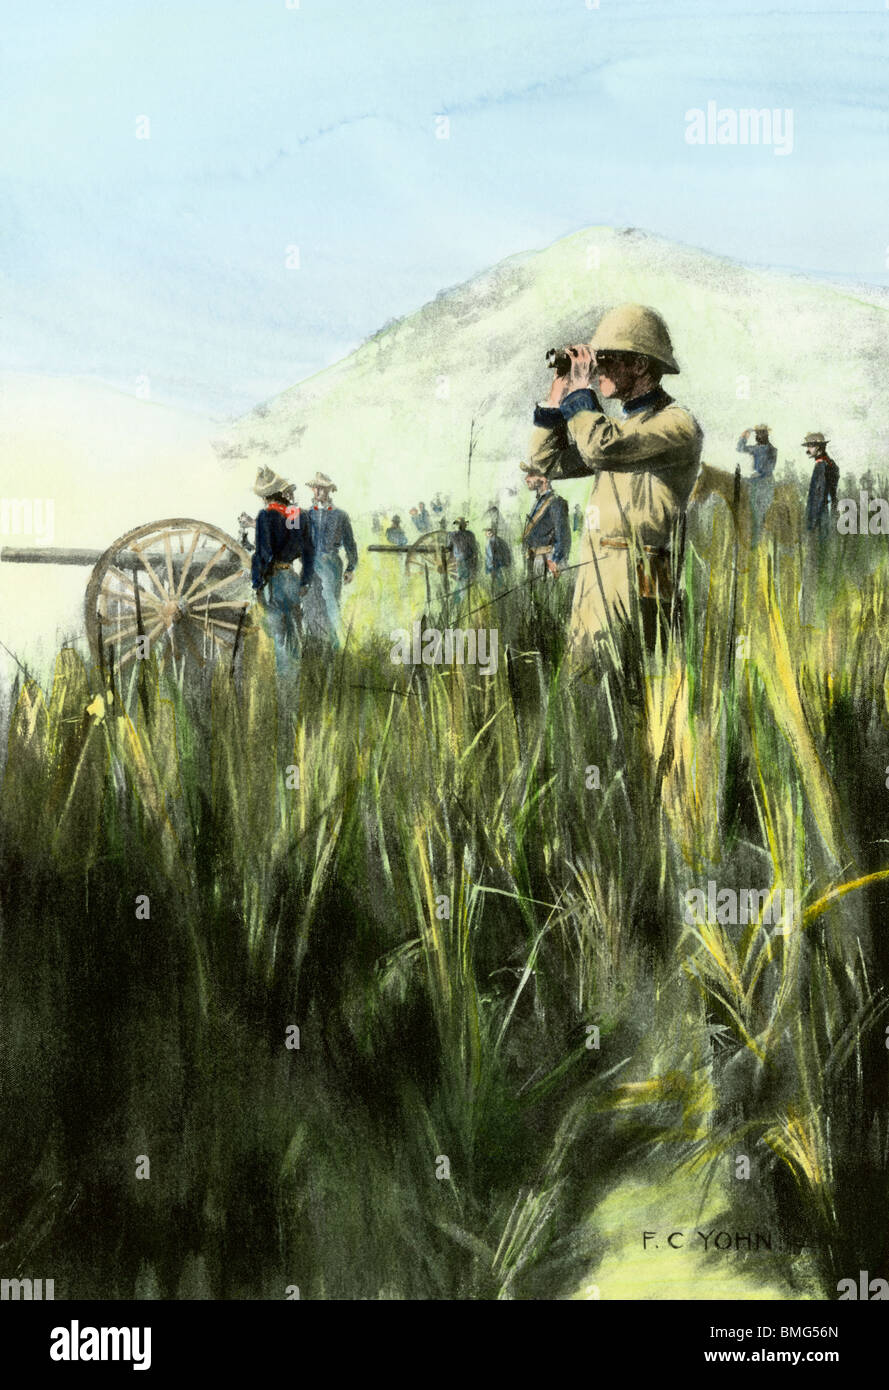 US officers observing artillery barrage of Coamo, Puerto Rico, Spanish-American War, 1898. Hand-colored halftone - Stock Image